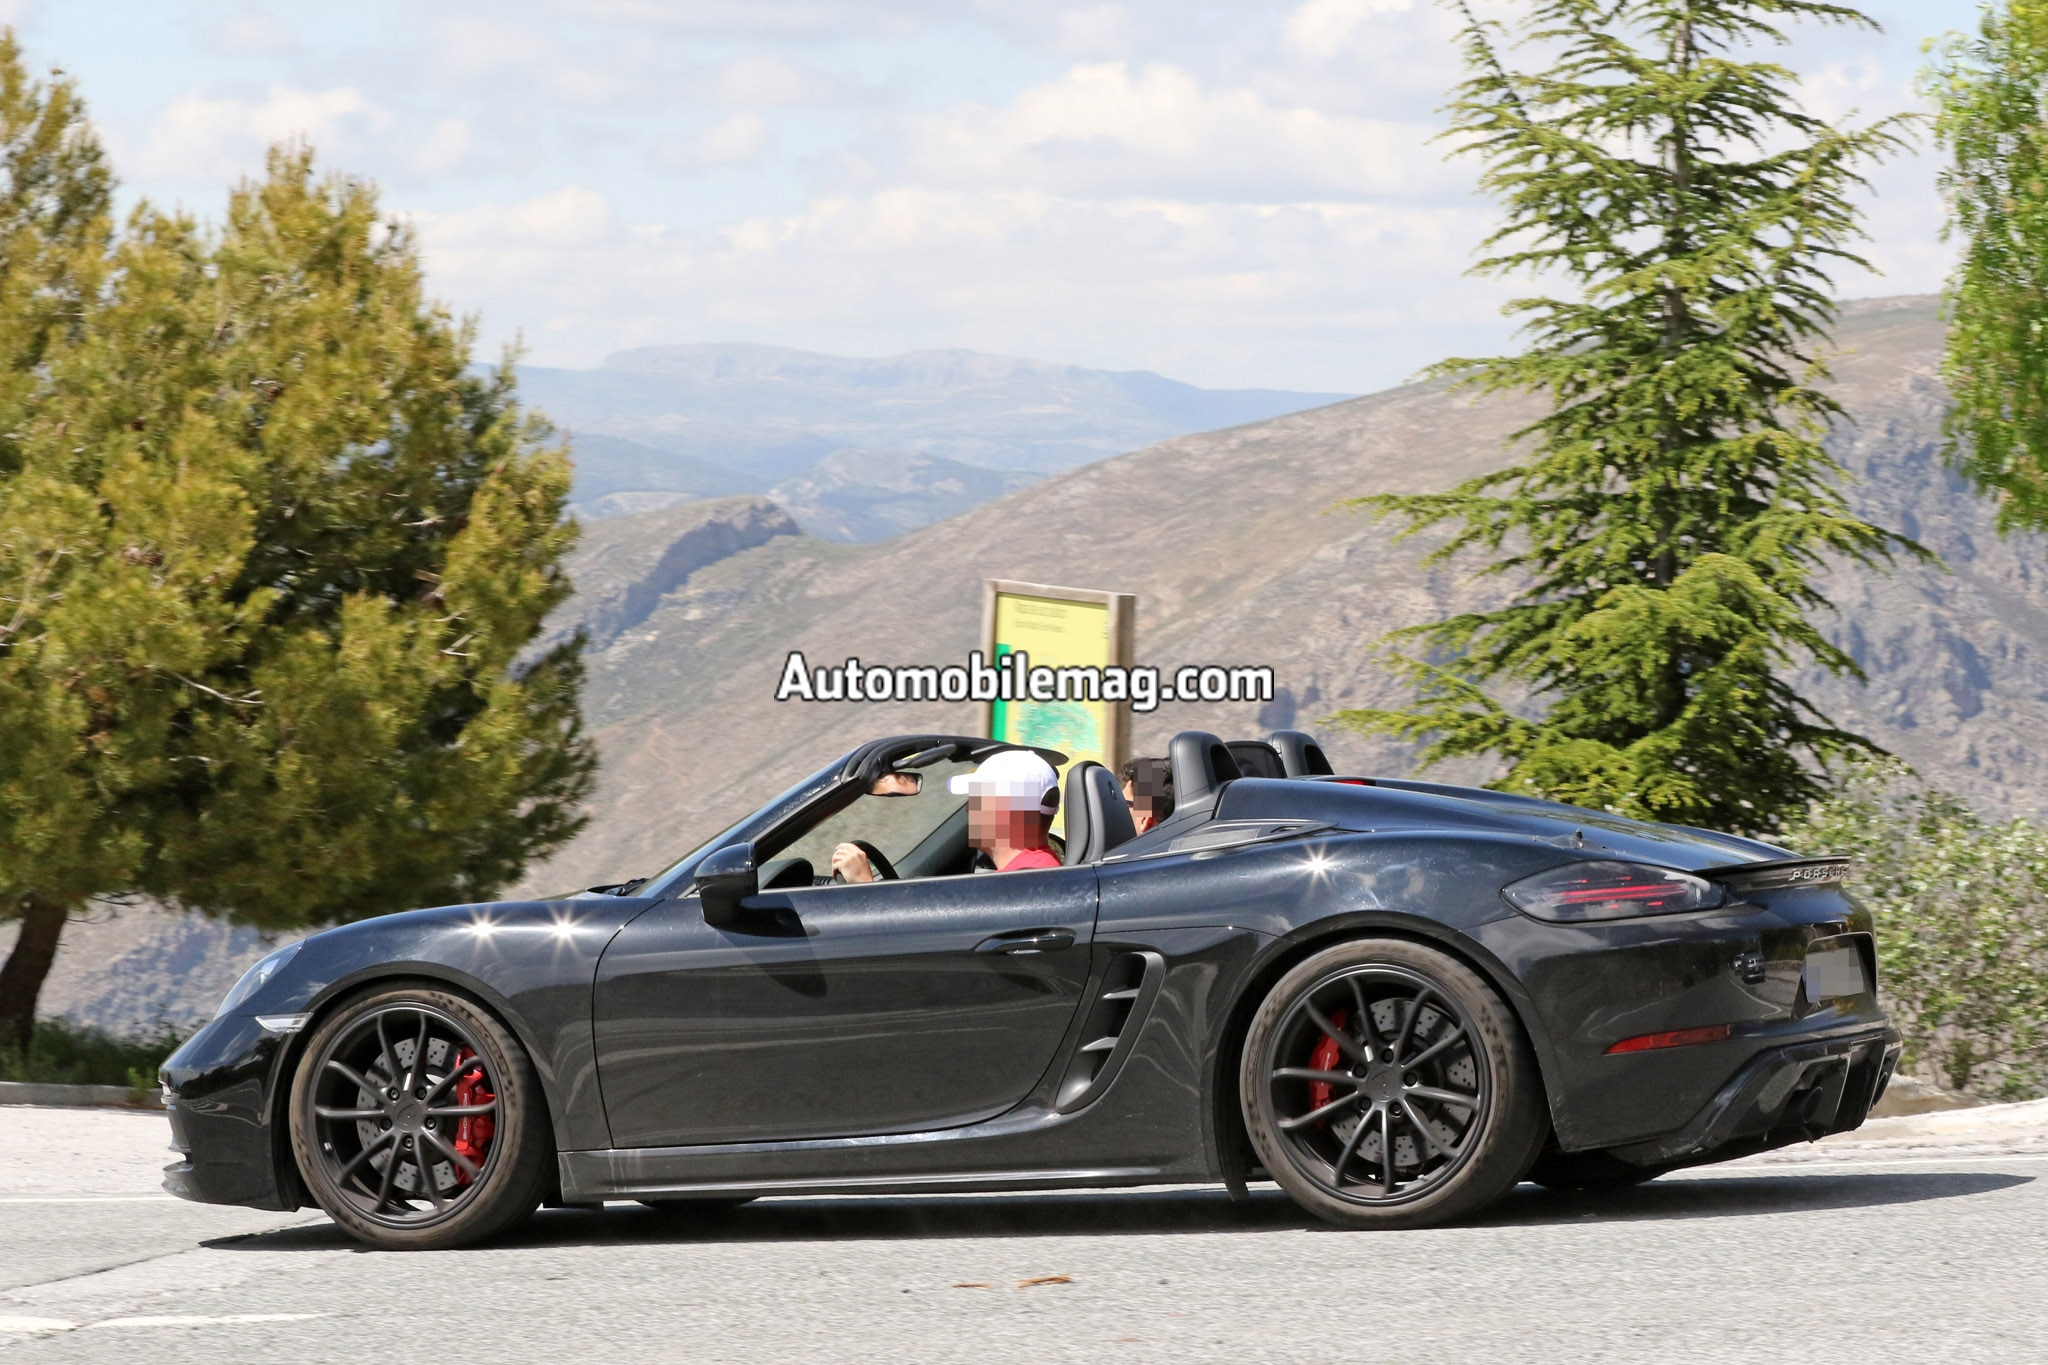 2019 Porsche 718 Boxster Spyder Spied In The Wild Automobile Magazine